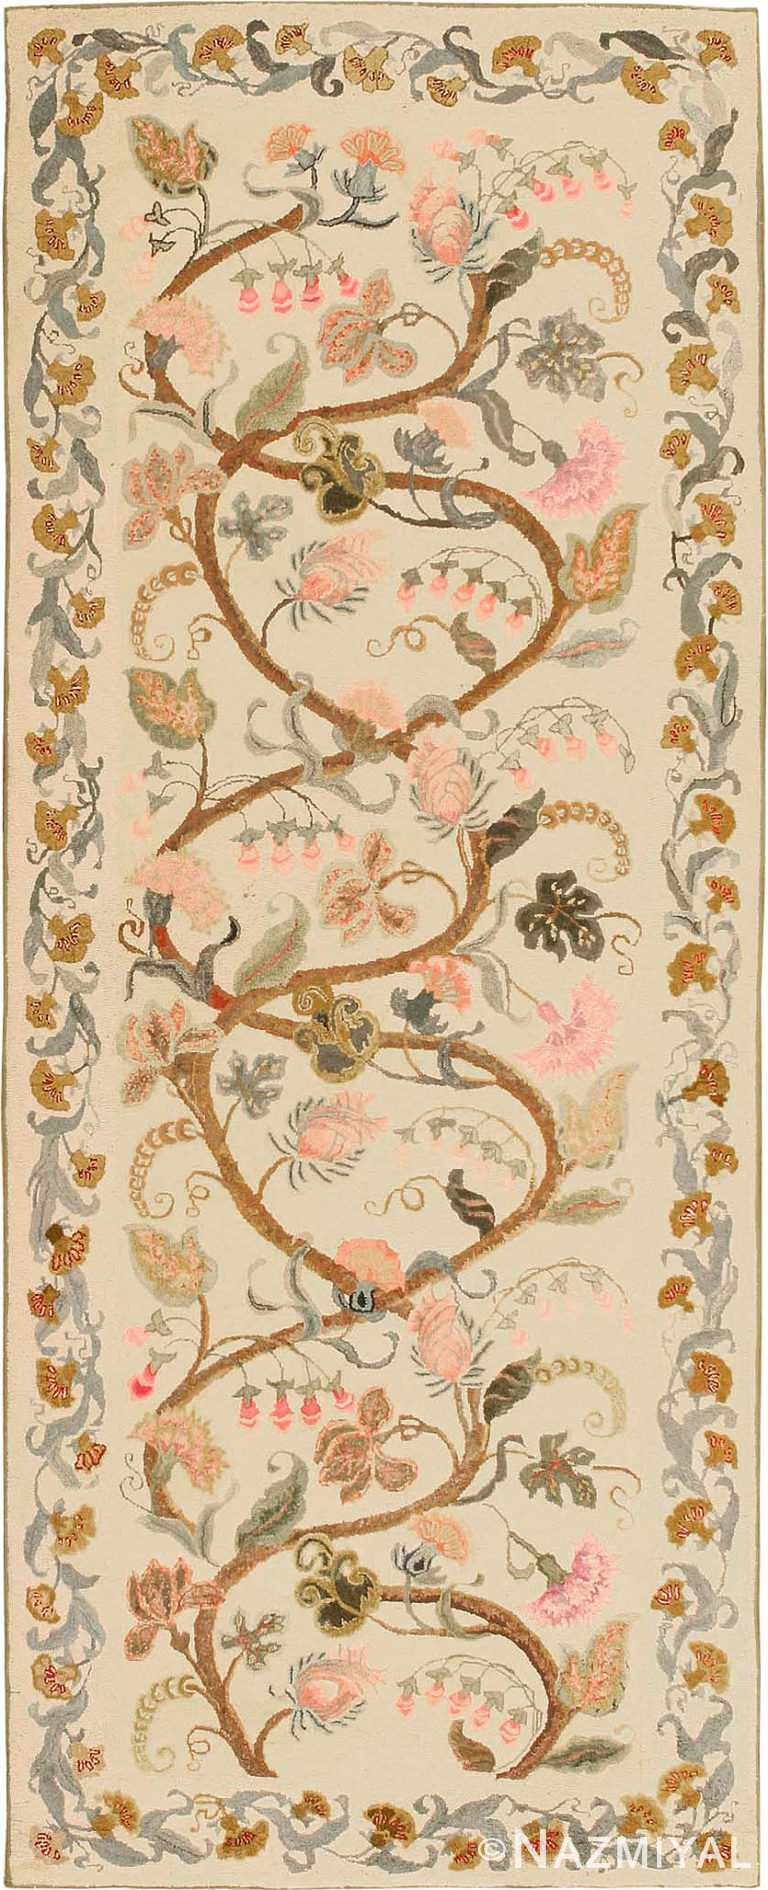 Floral Antique American Hooked Runner Rug #2694 by Nazmiyal Antique Rugs